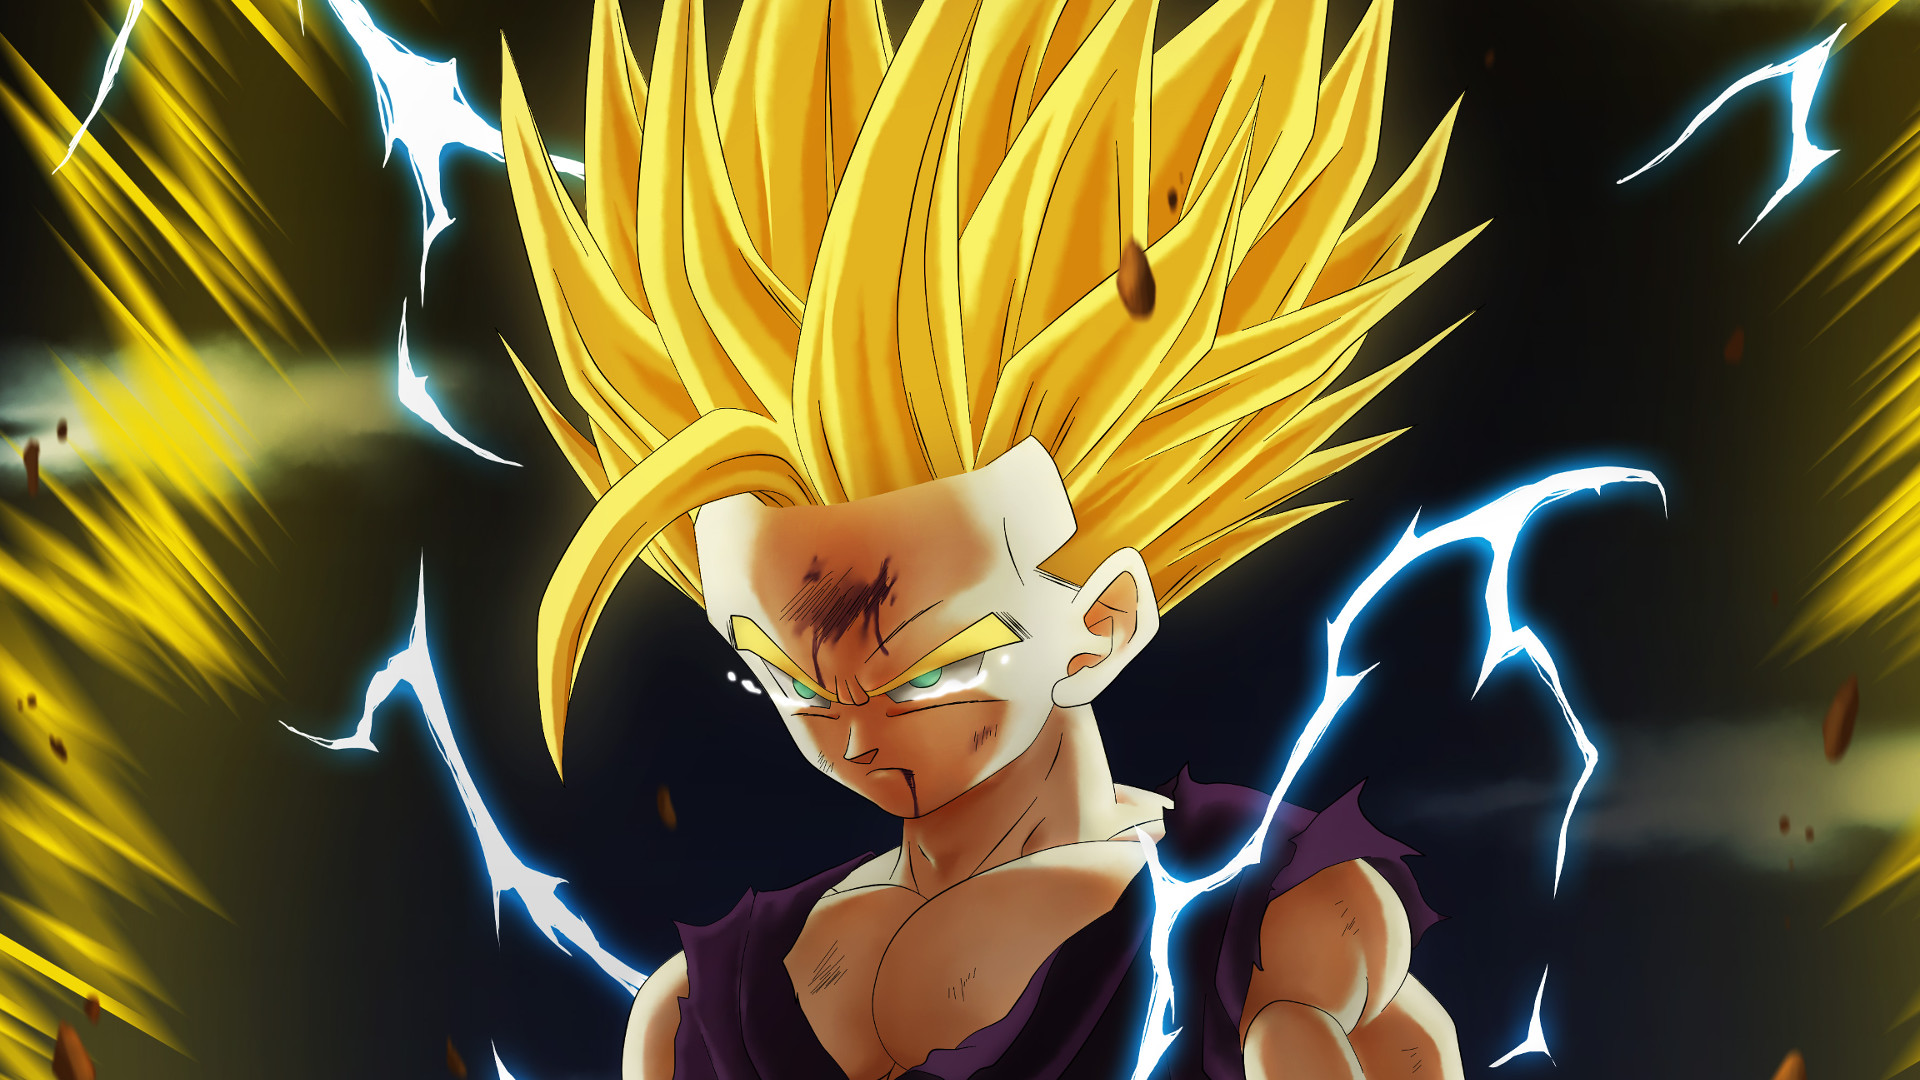 Dbz live wallpapers 66 images - 3d wallpaper of dragon ball z ...